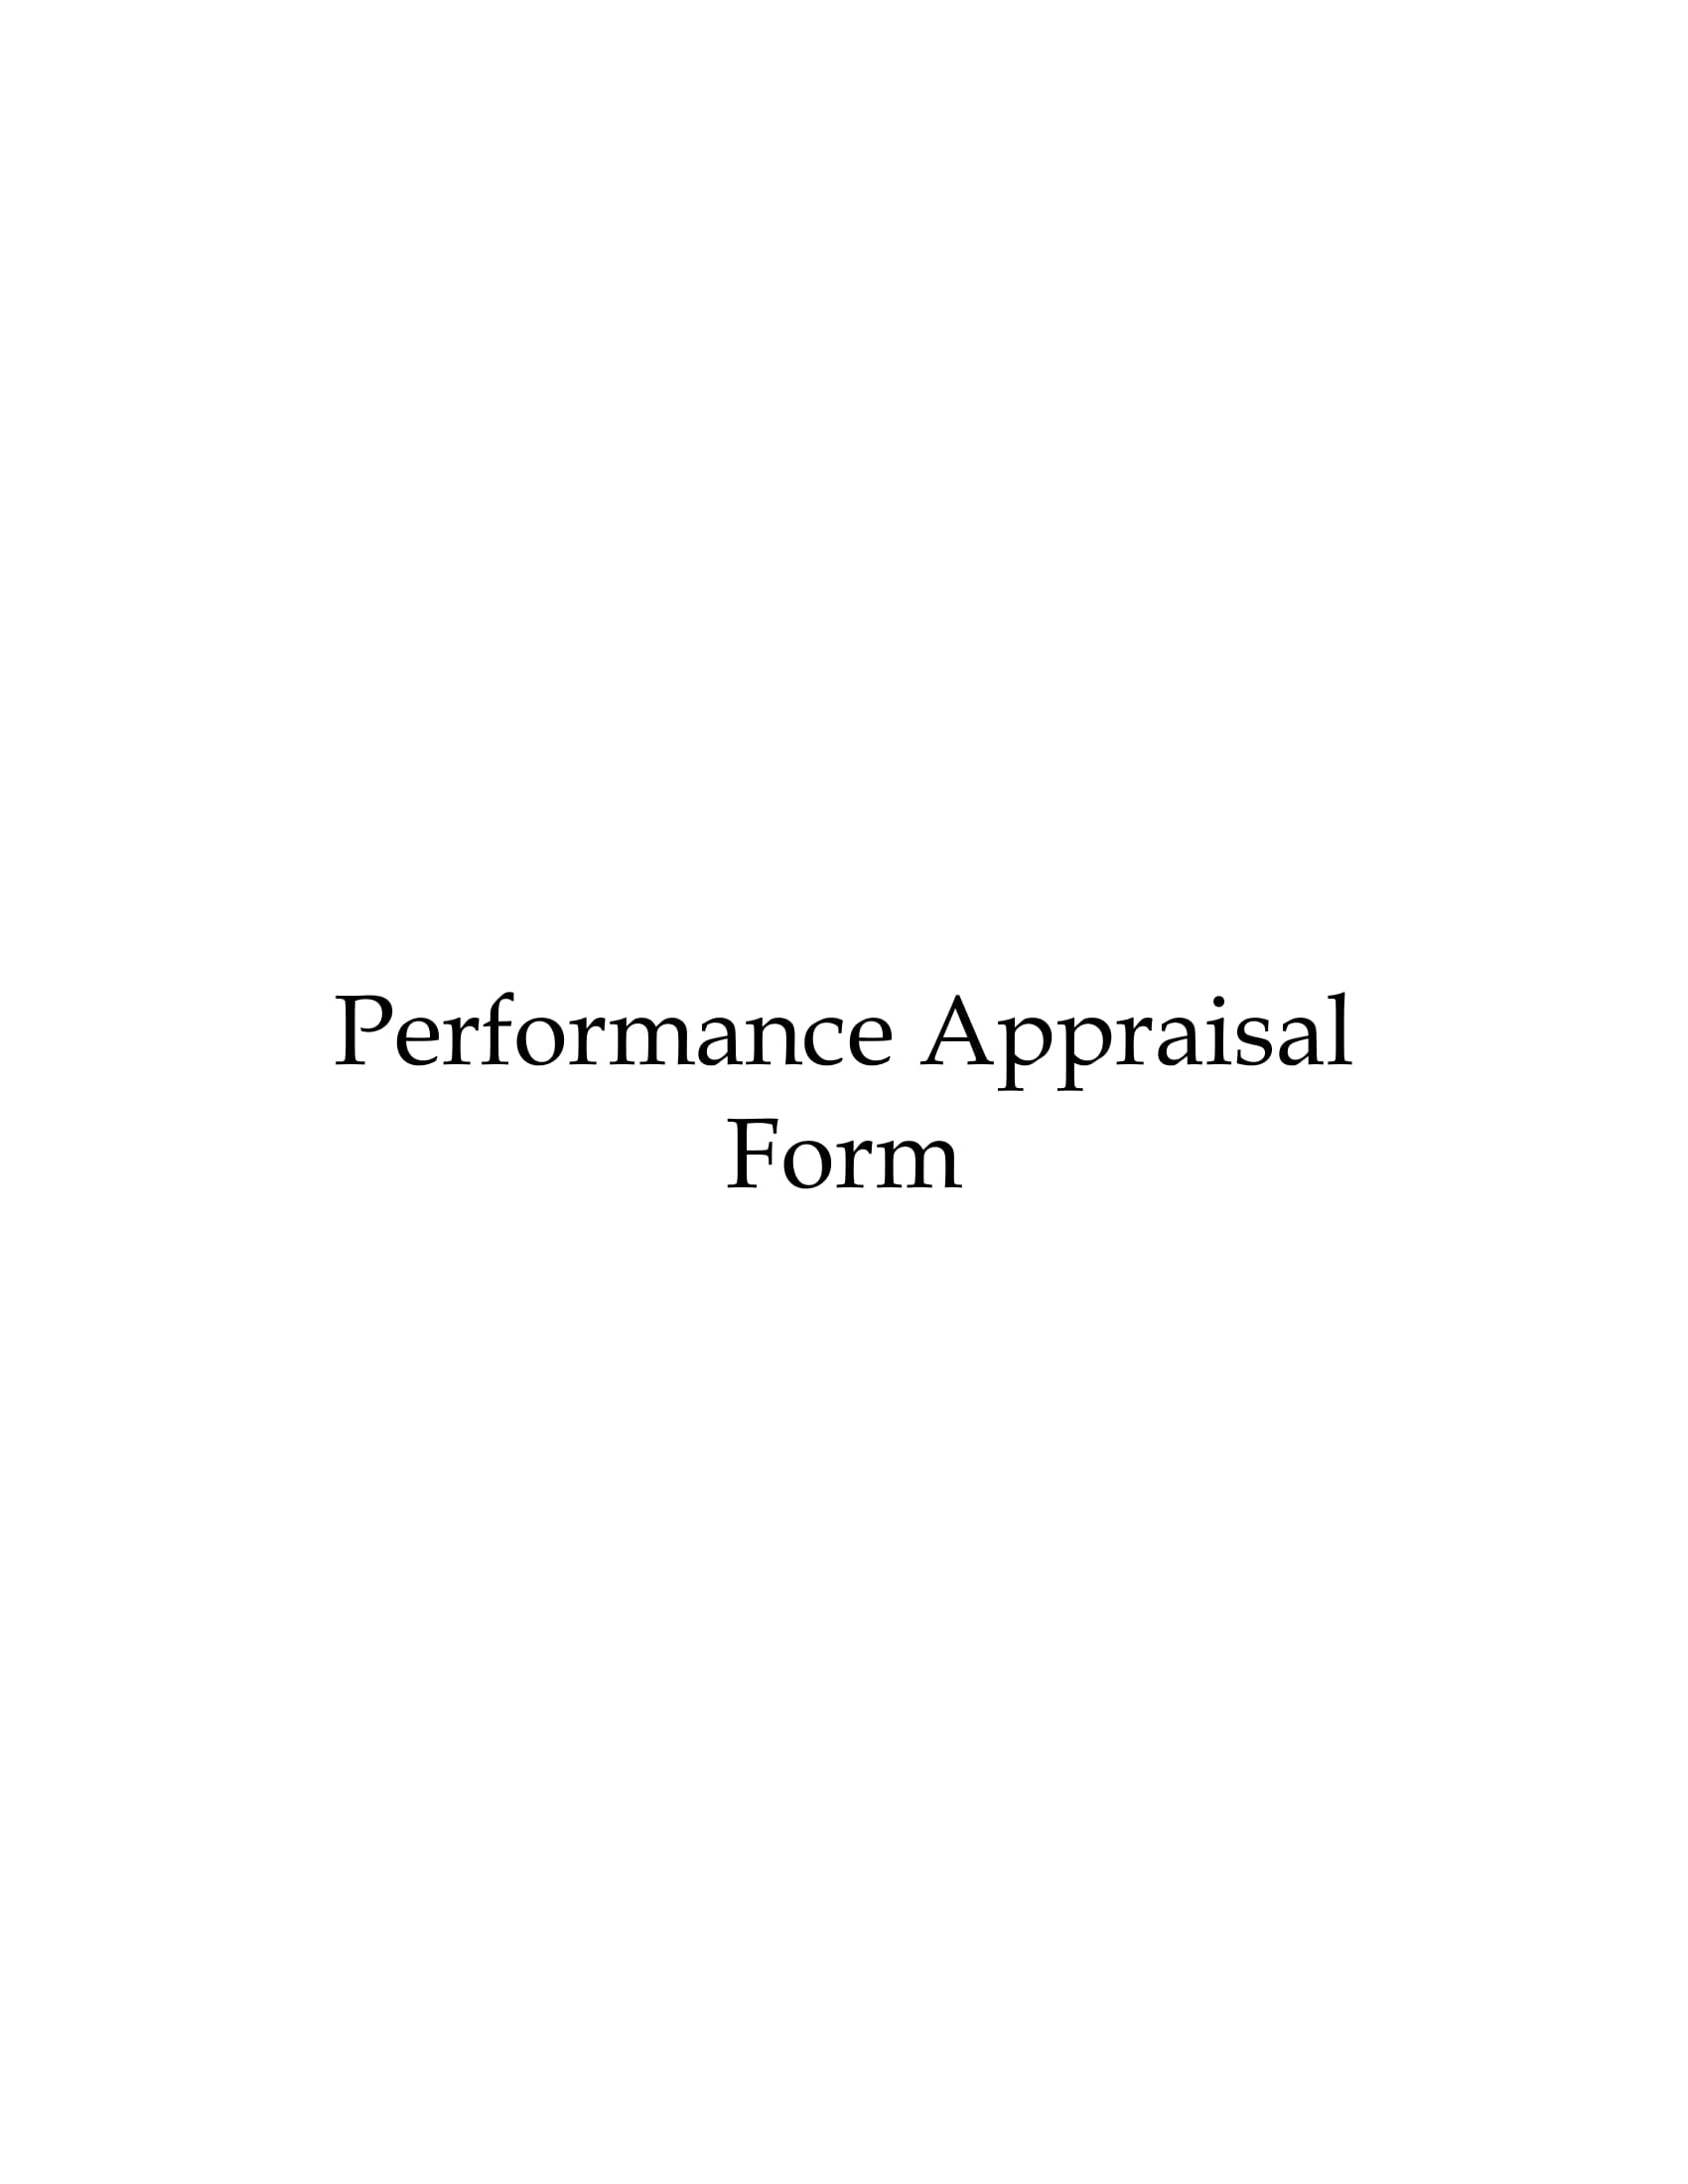 performance appraisal form 1